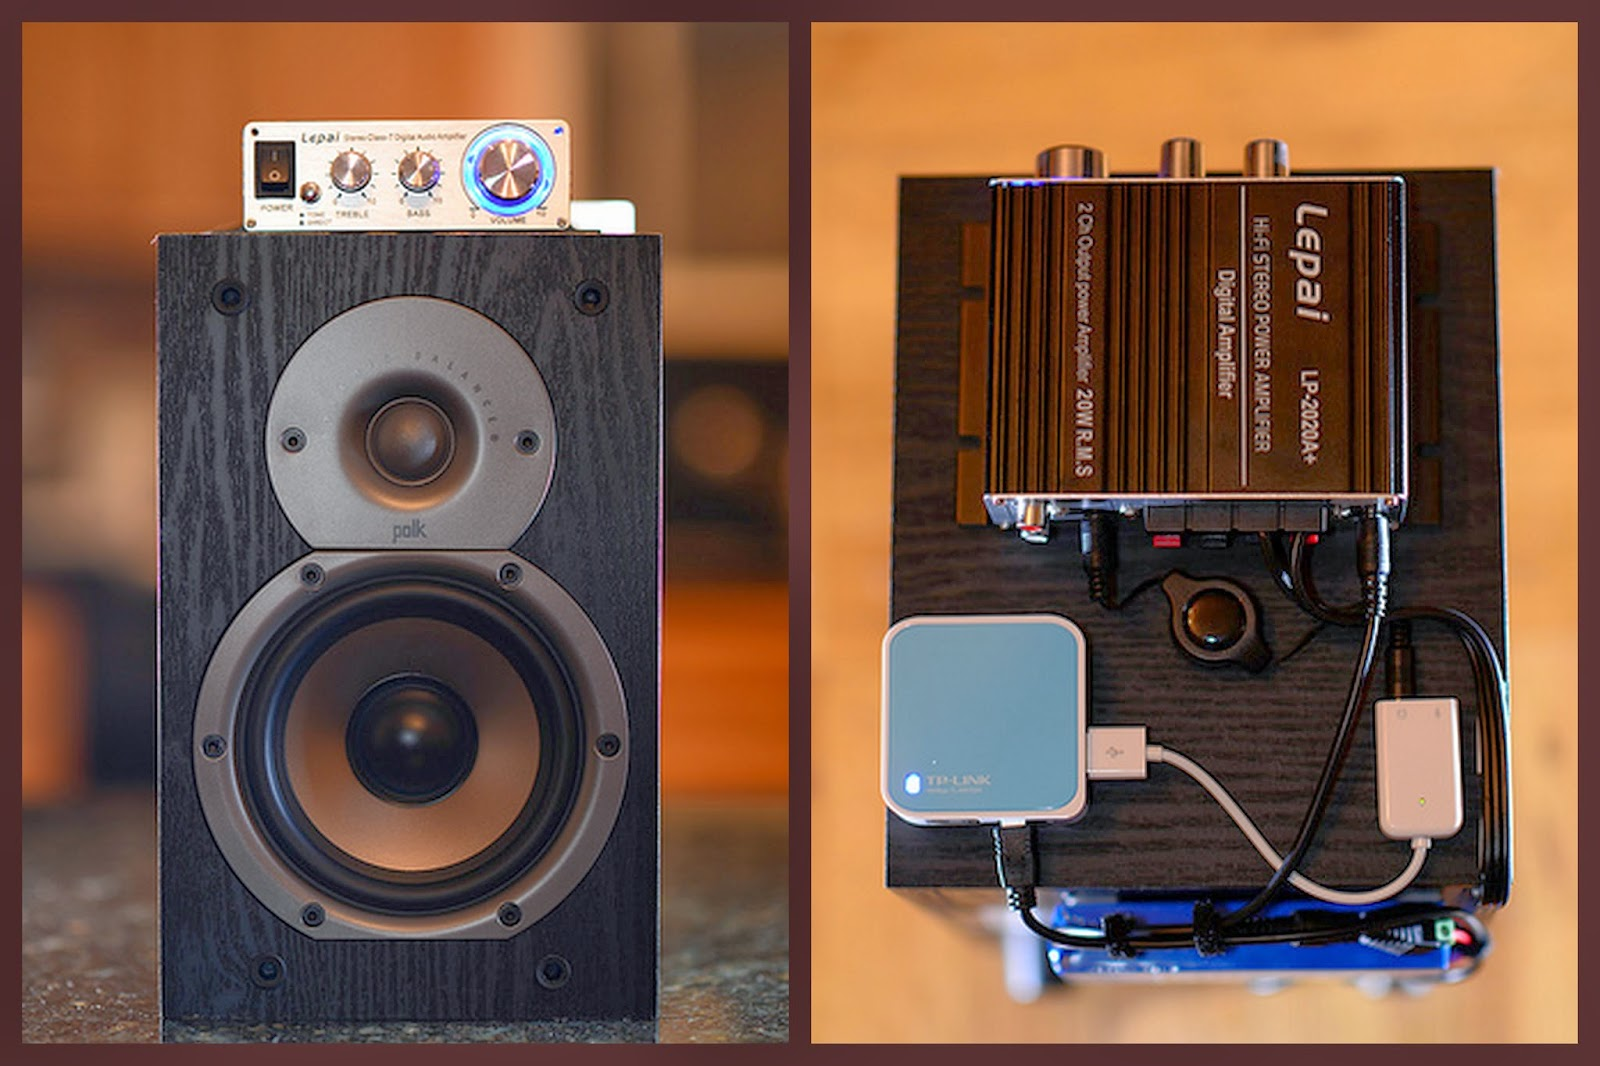 Qui's techNOLOGY Blog: DIY Portable AirPlay Speaker System